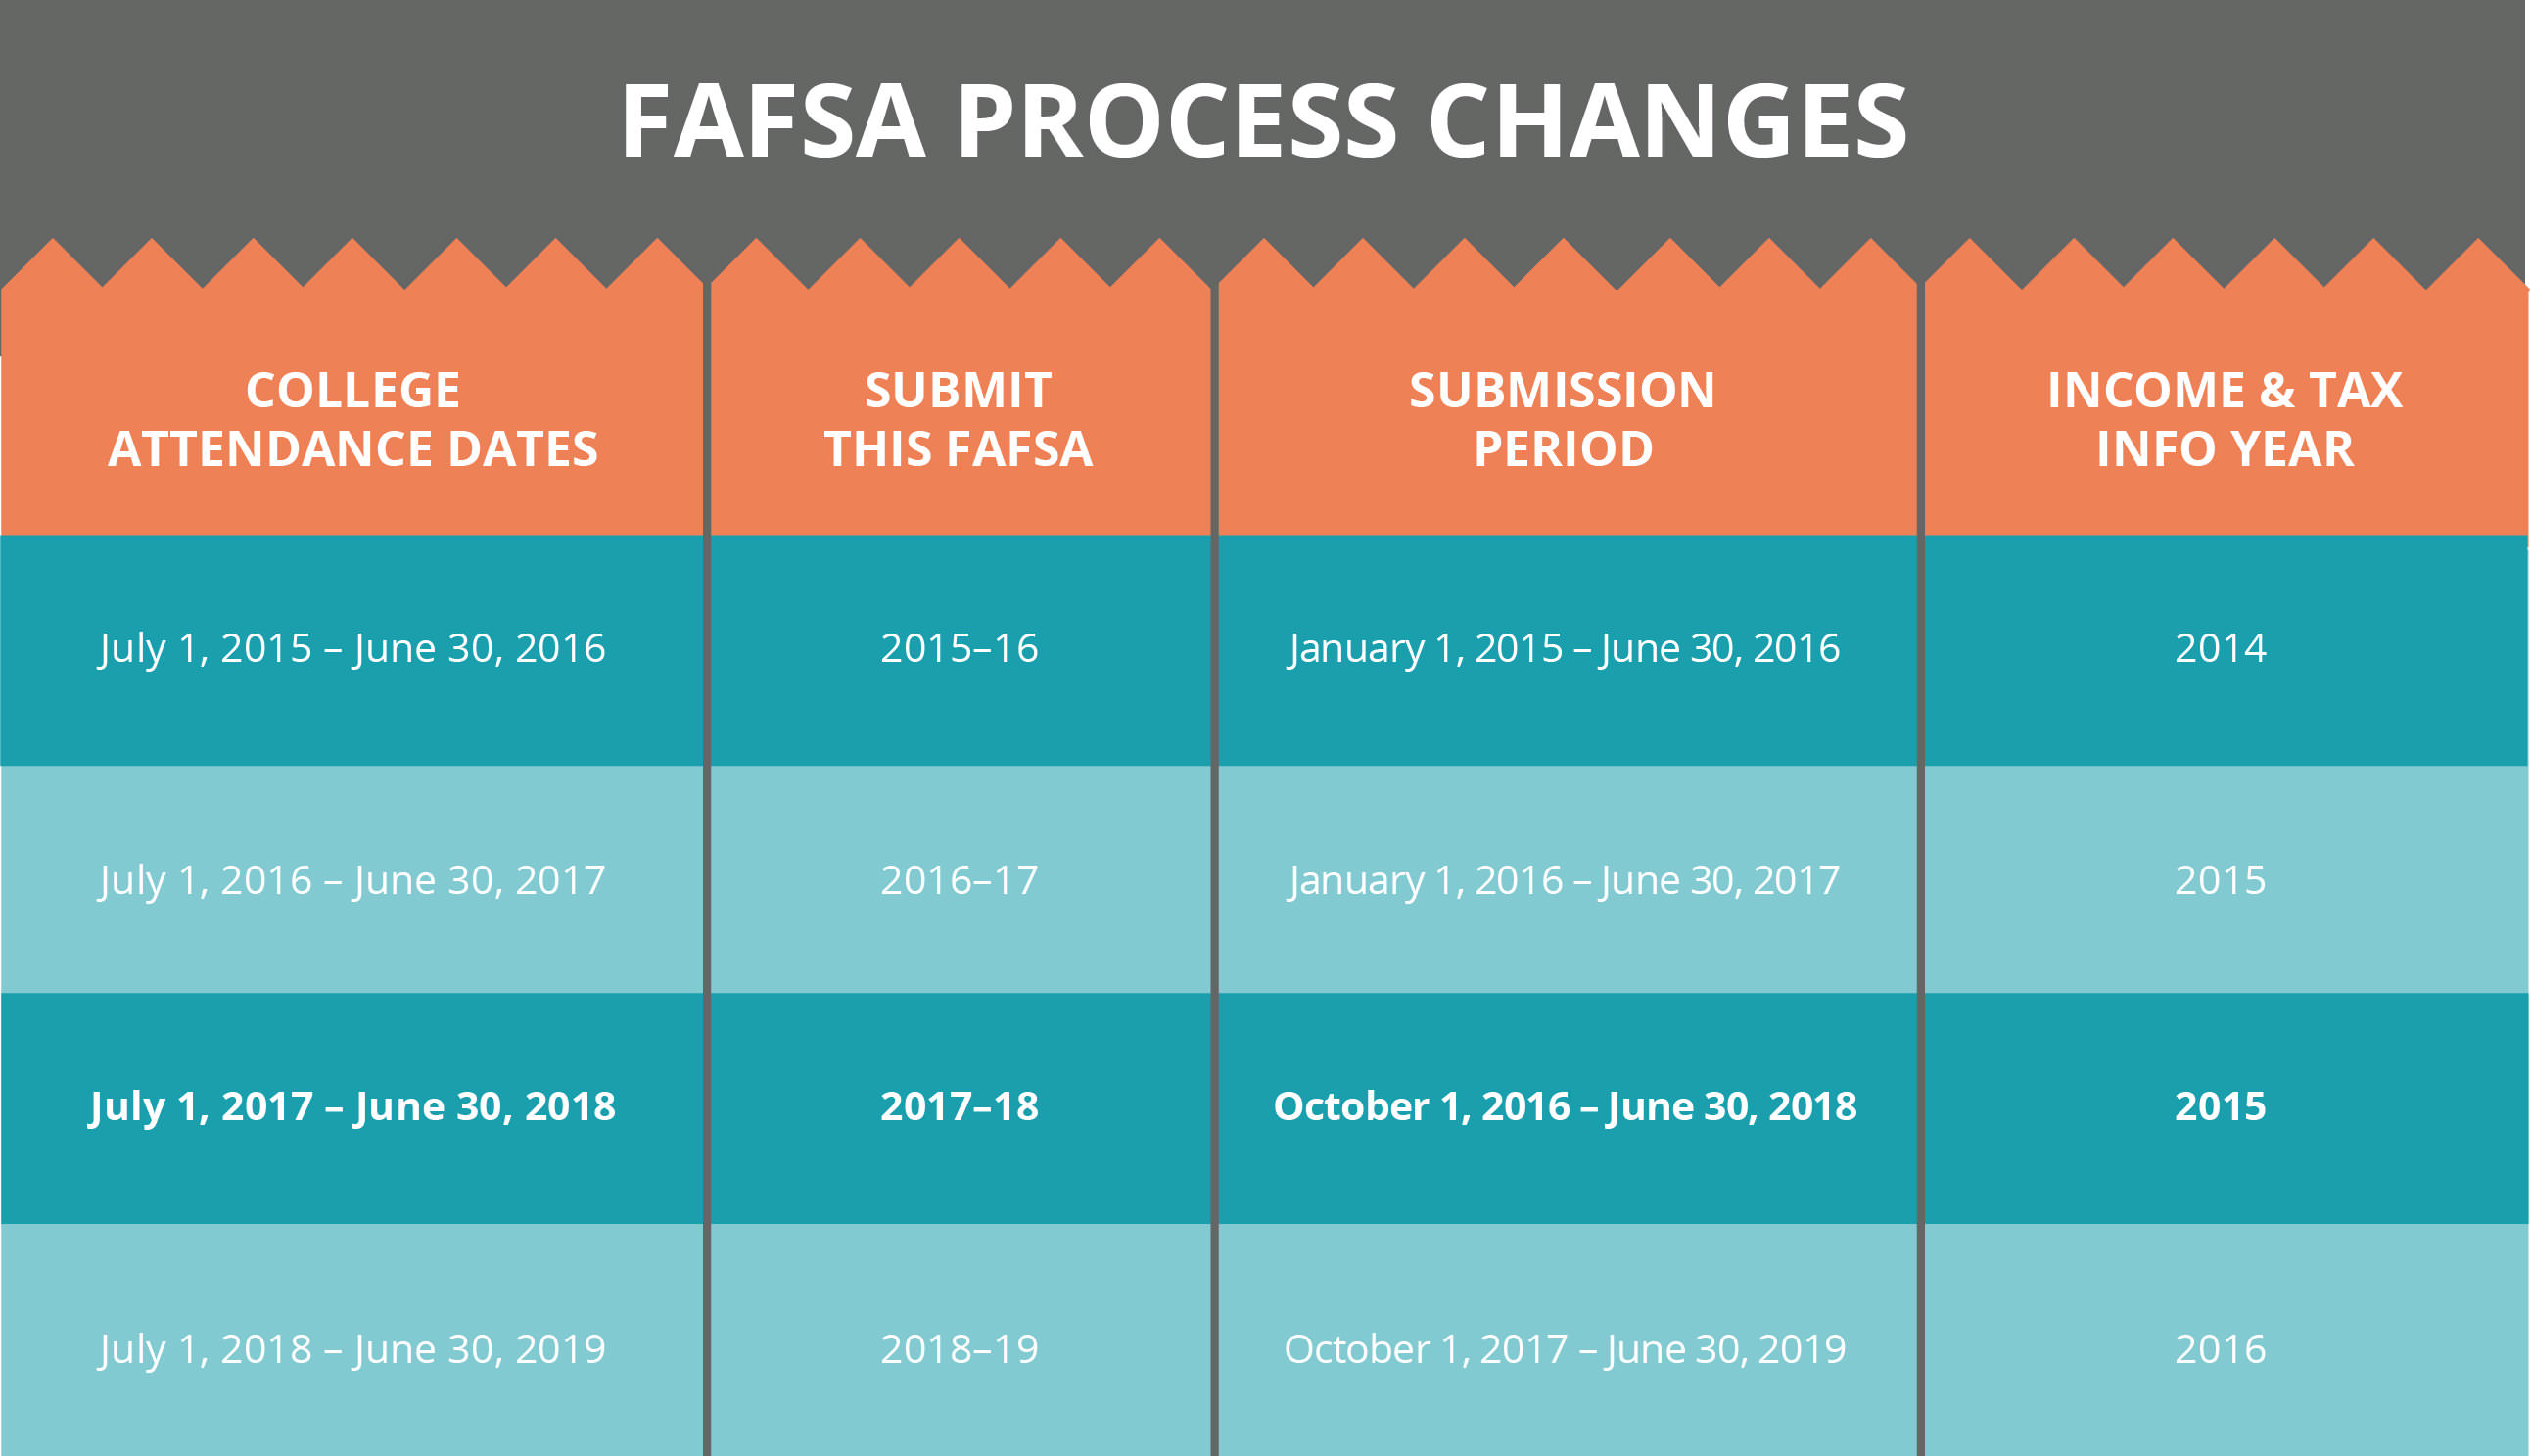 fafsa changes